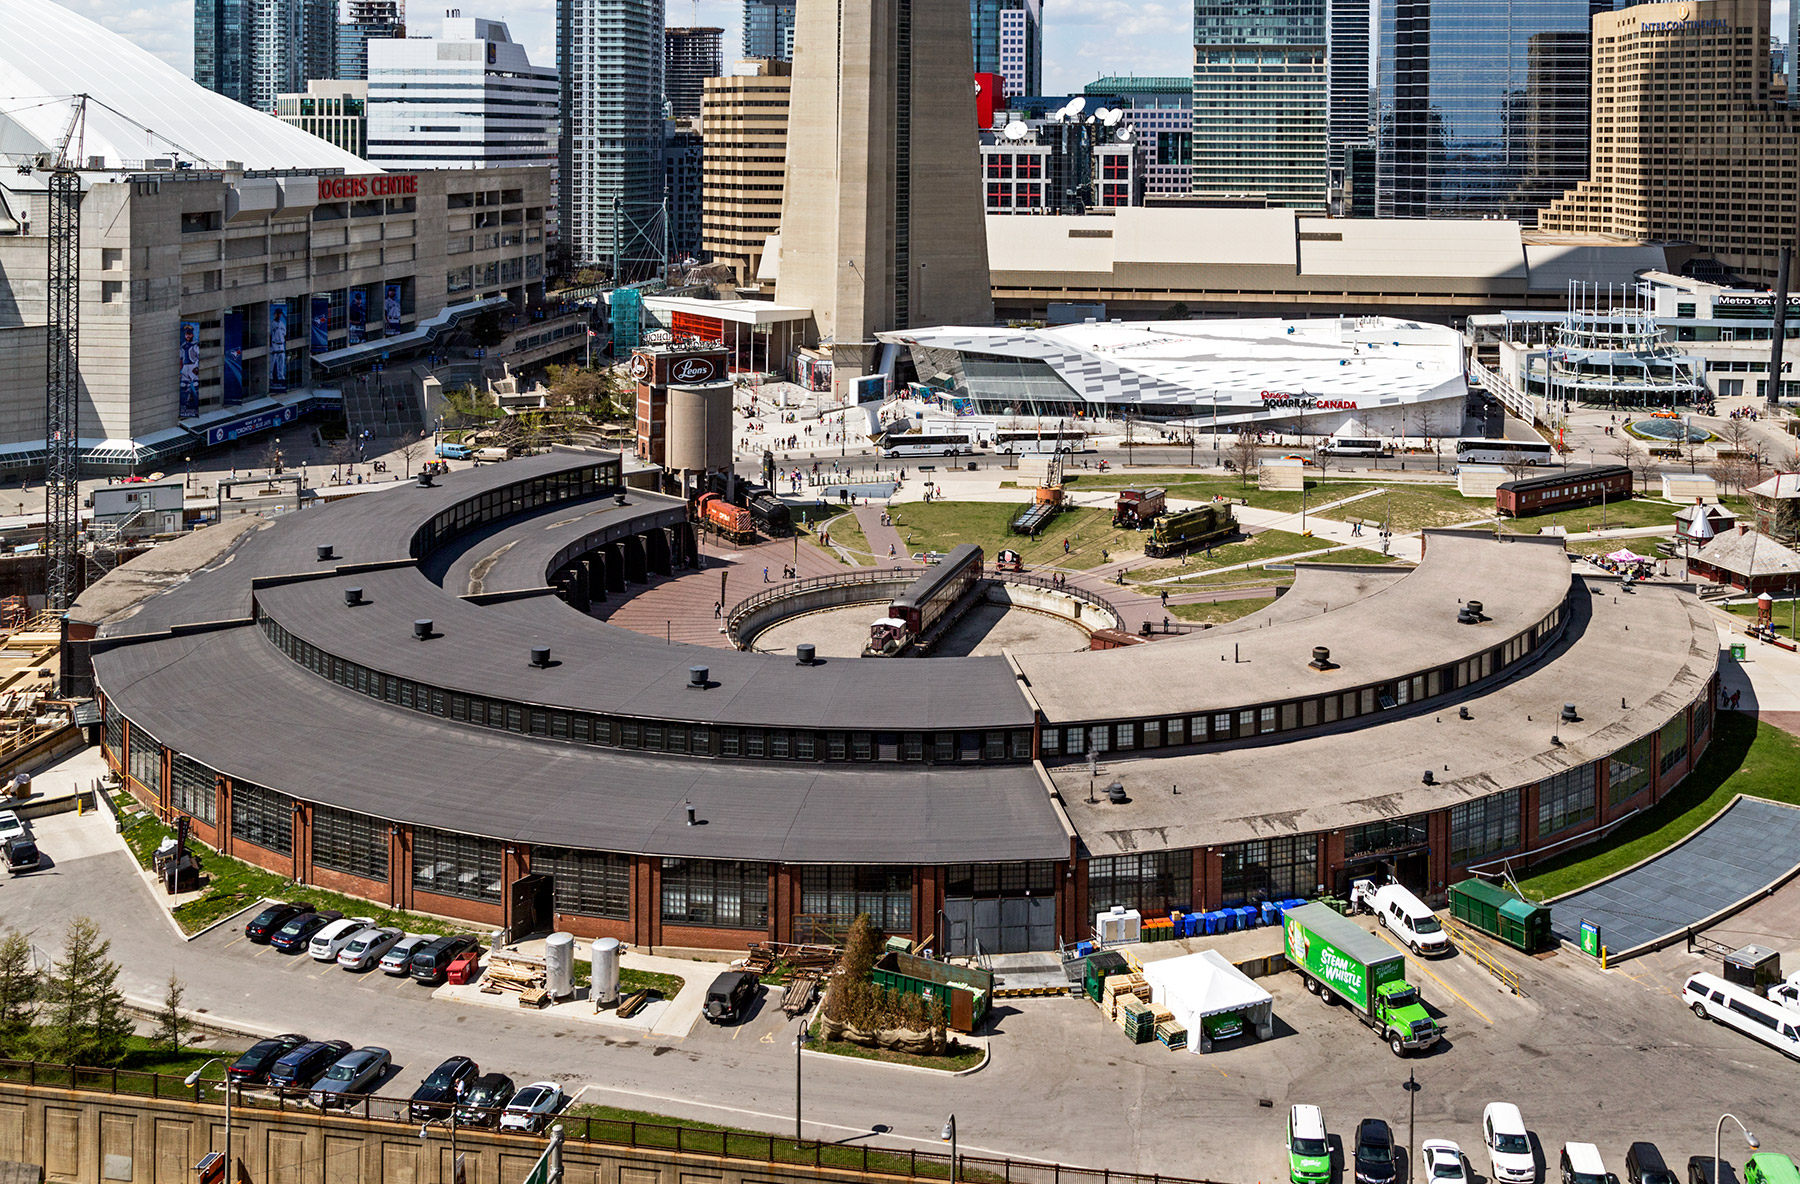 20150504. An aerial shot of Toronto's John Street Roundhouse. Vi